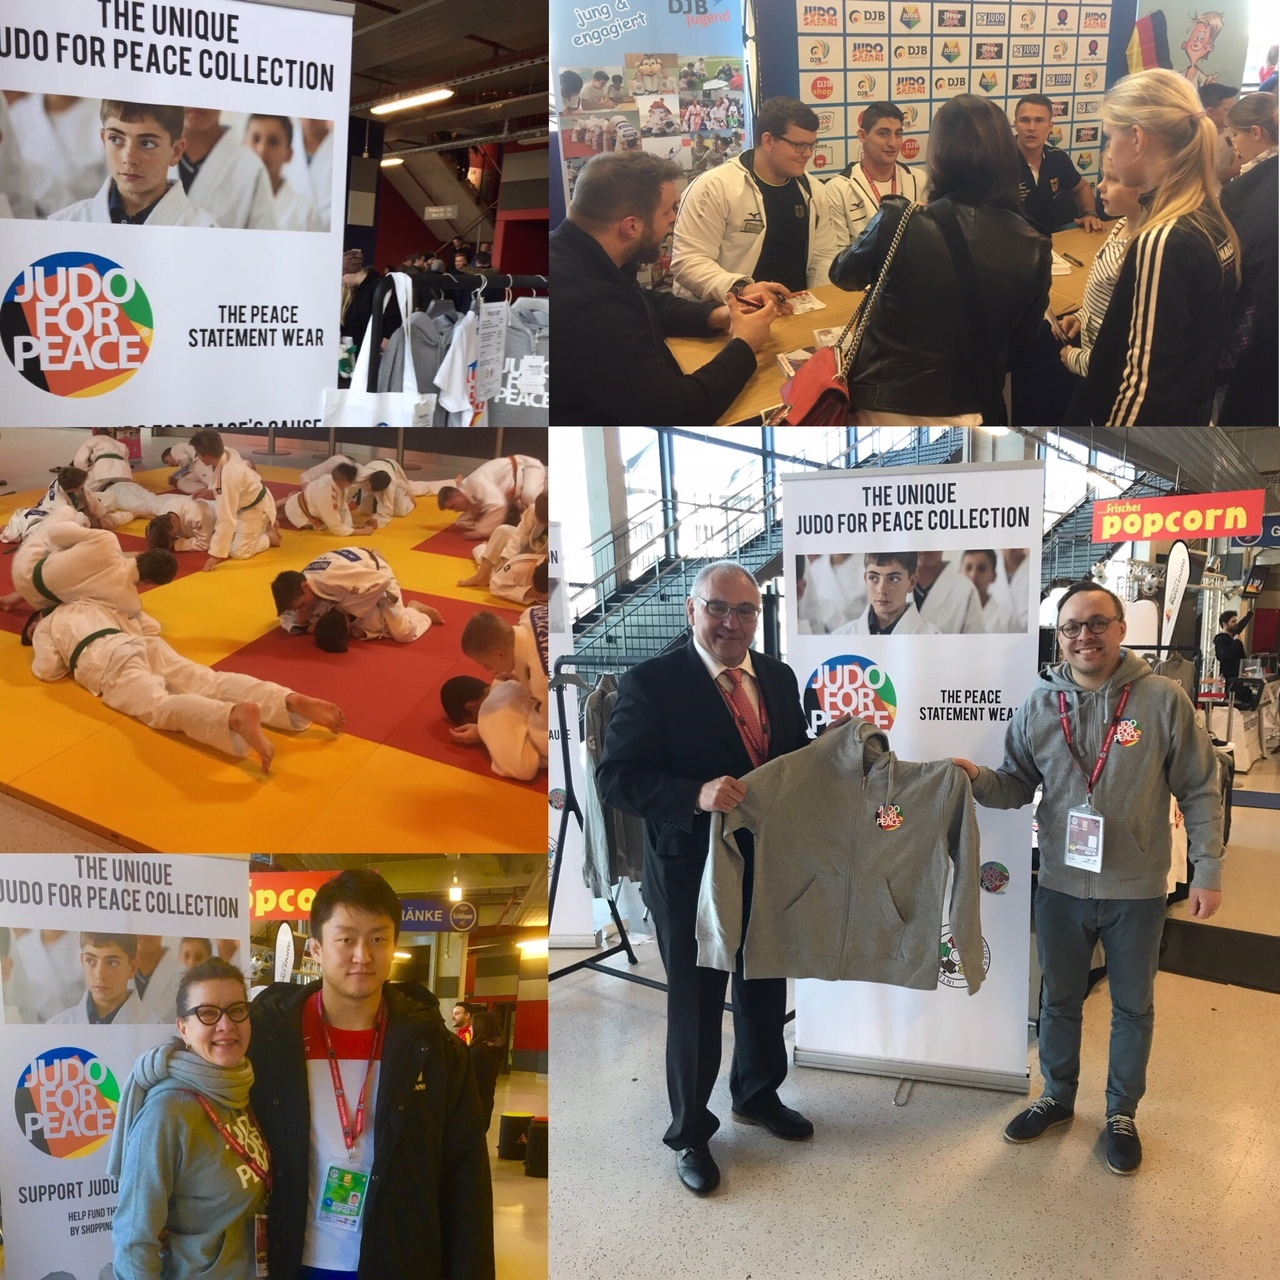 Judo_for_peace_visitors_Duesseldorf_Grand_slam_moreon